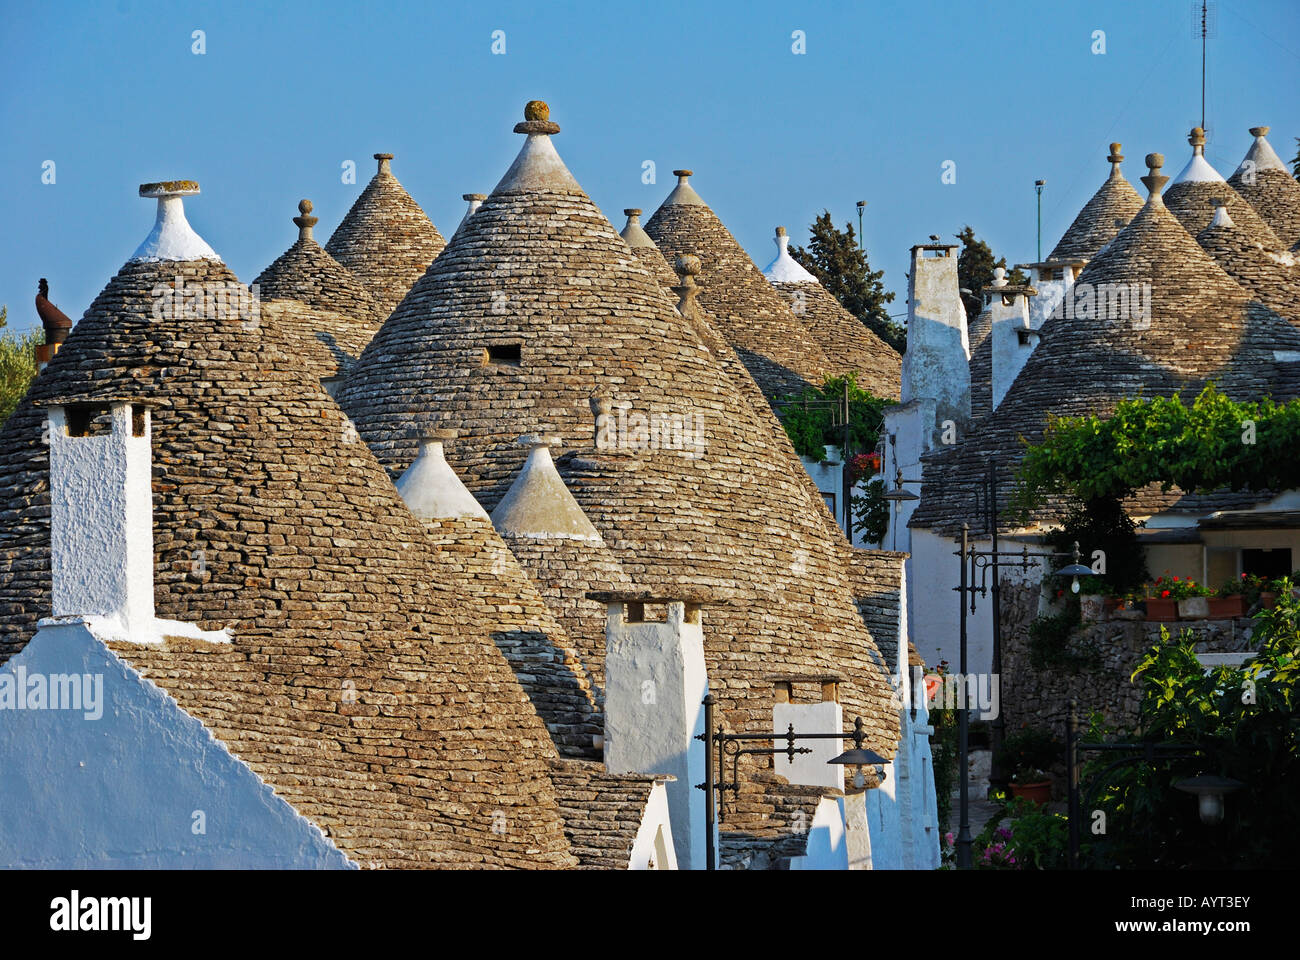 Rundhaus In Apulien Trulli Round Houses Of Alberobello Unesco World Heritage Site